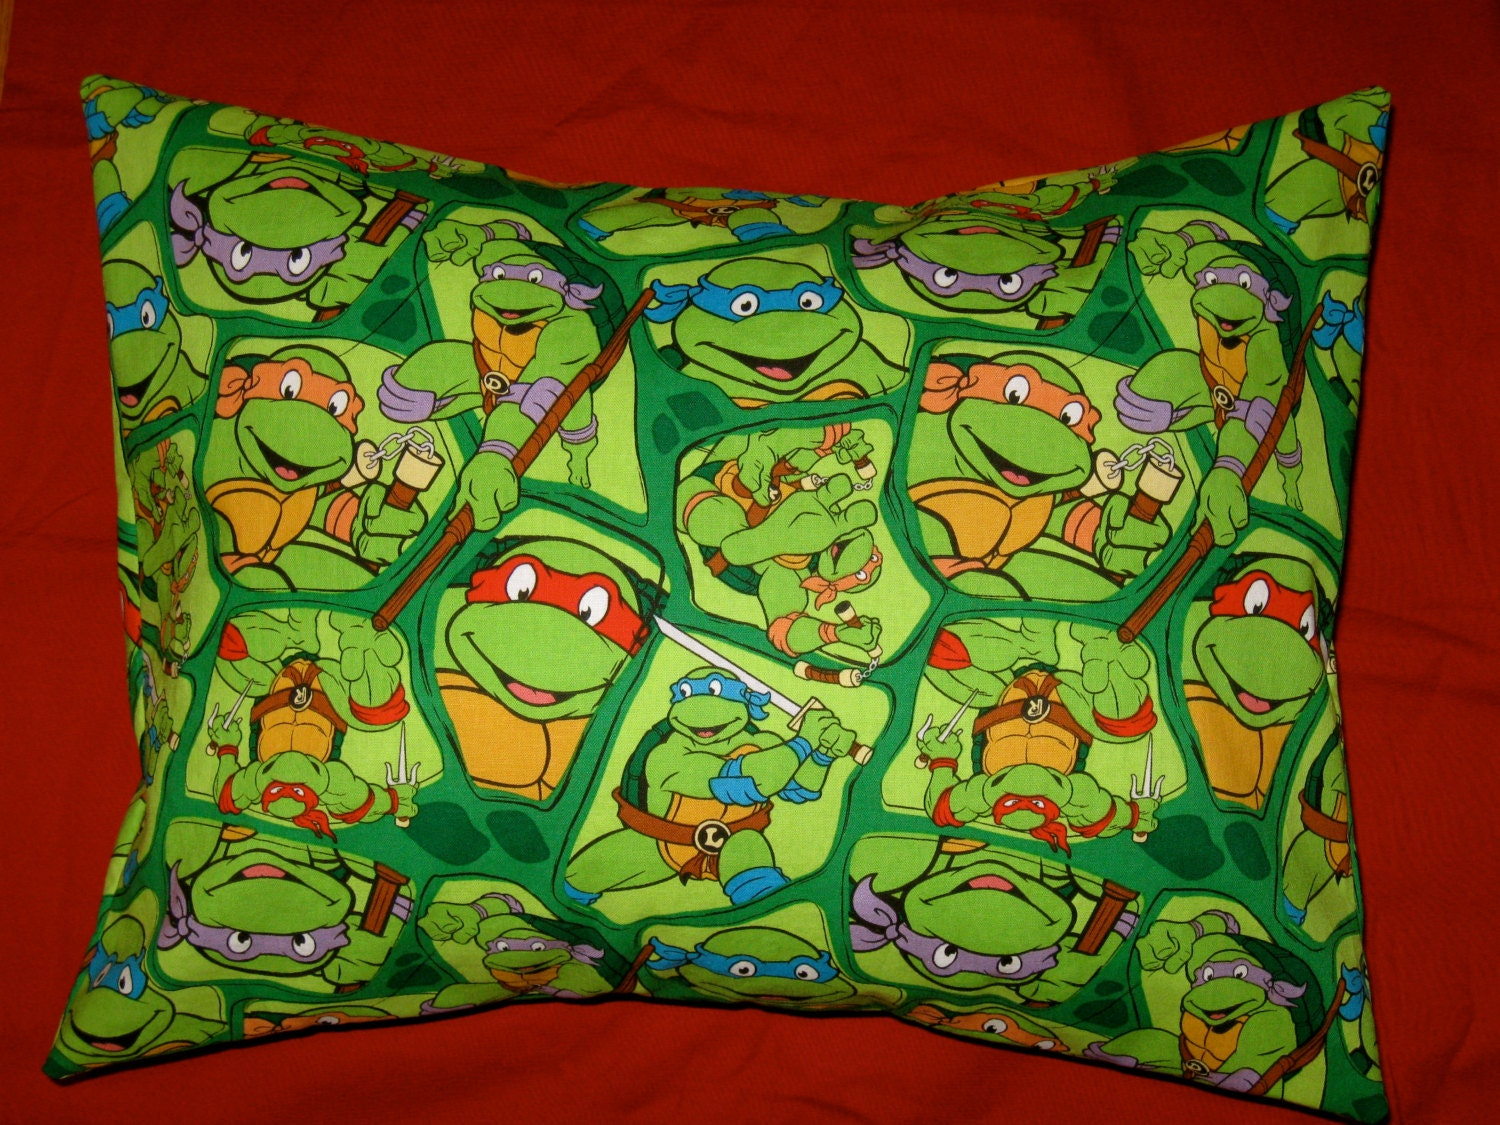 Ninja Turtle Decorative Pillow : Teenage Mutant Ninja Turtle Print Travel Pillow Case or Throw